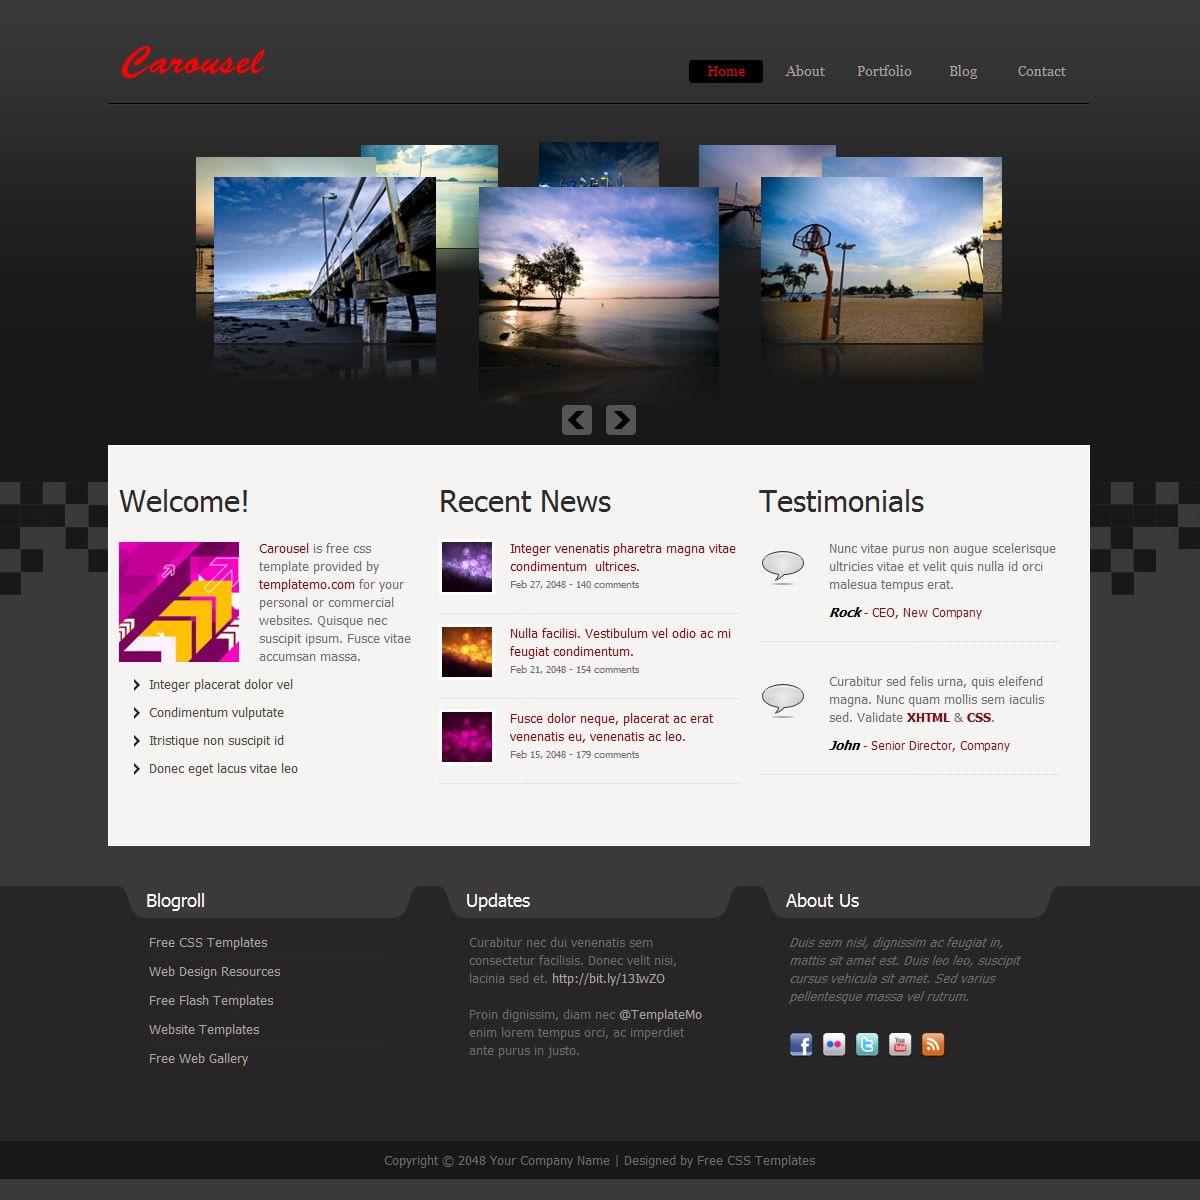 Carousel Theme Is Designed By A Darkgray Gradient Background Using Pixelated Effect In The Middle Horizon Homepag Css Templates Free Web Template Web Template